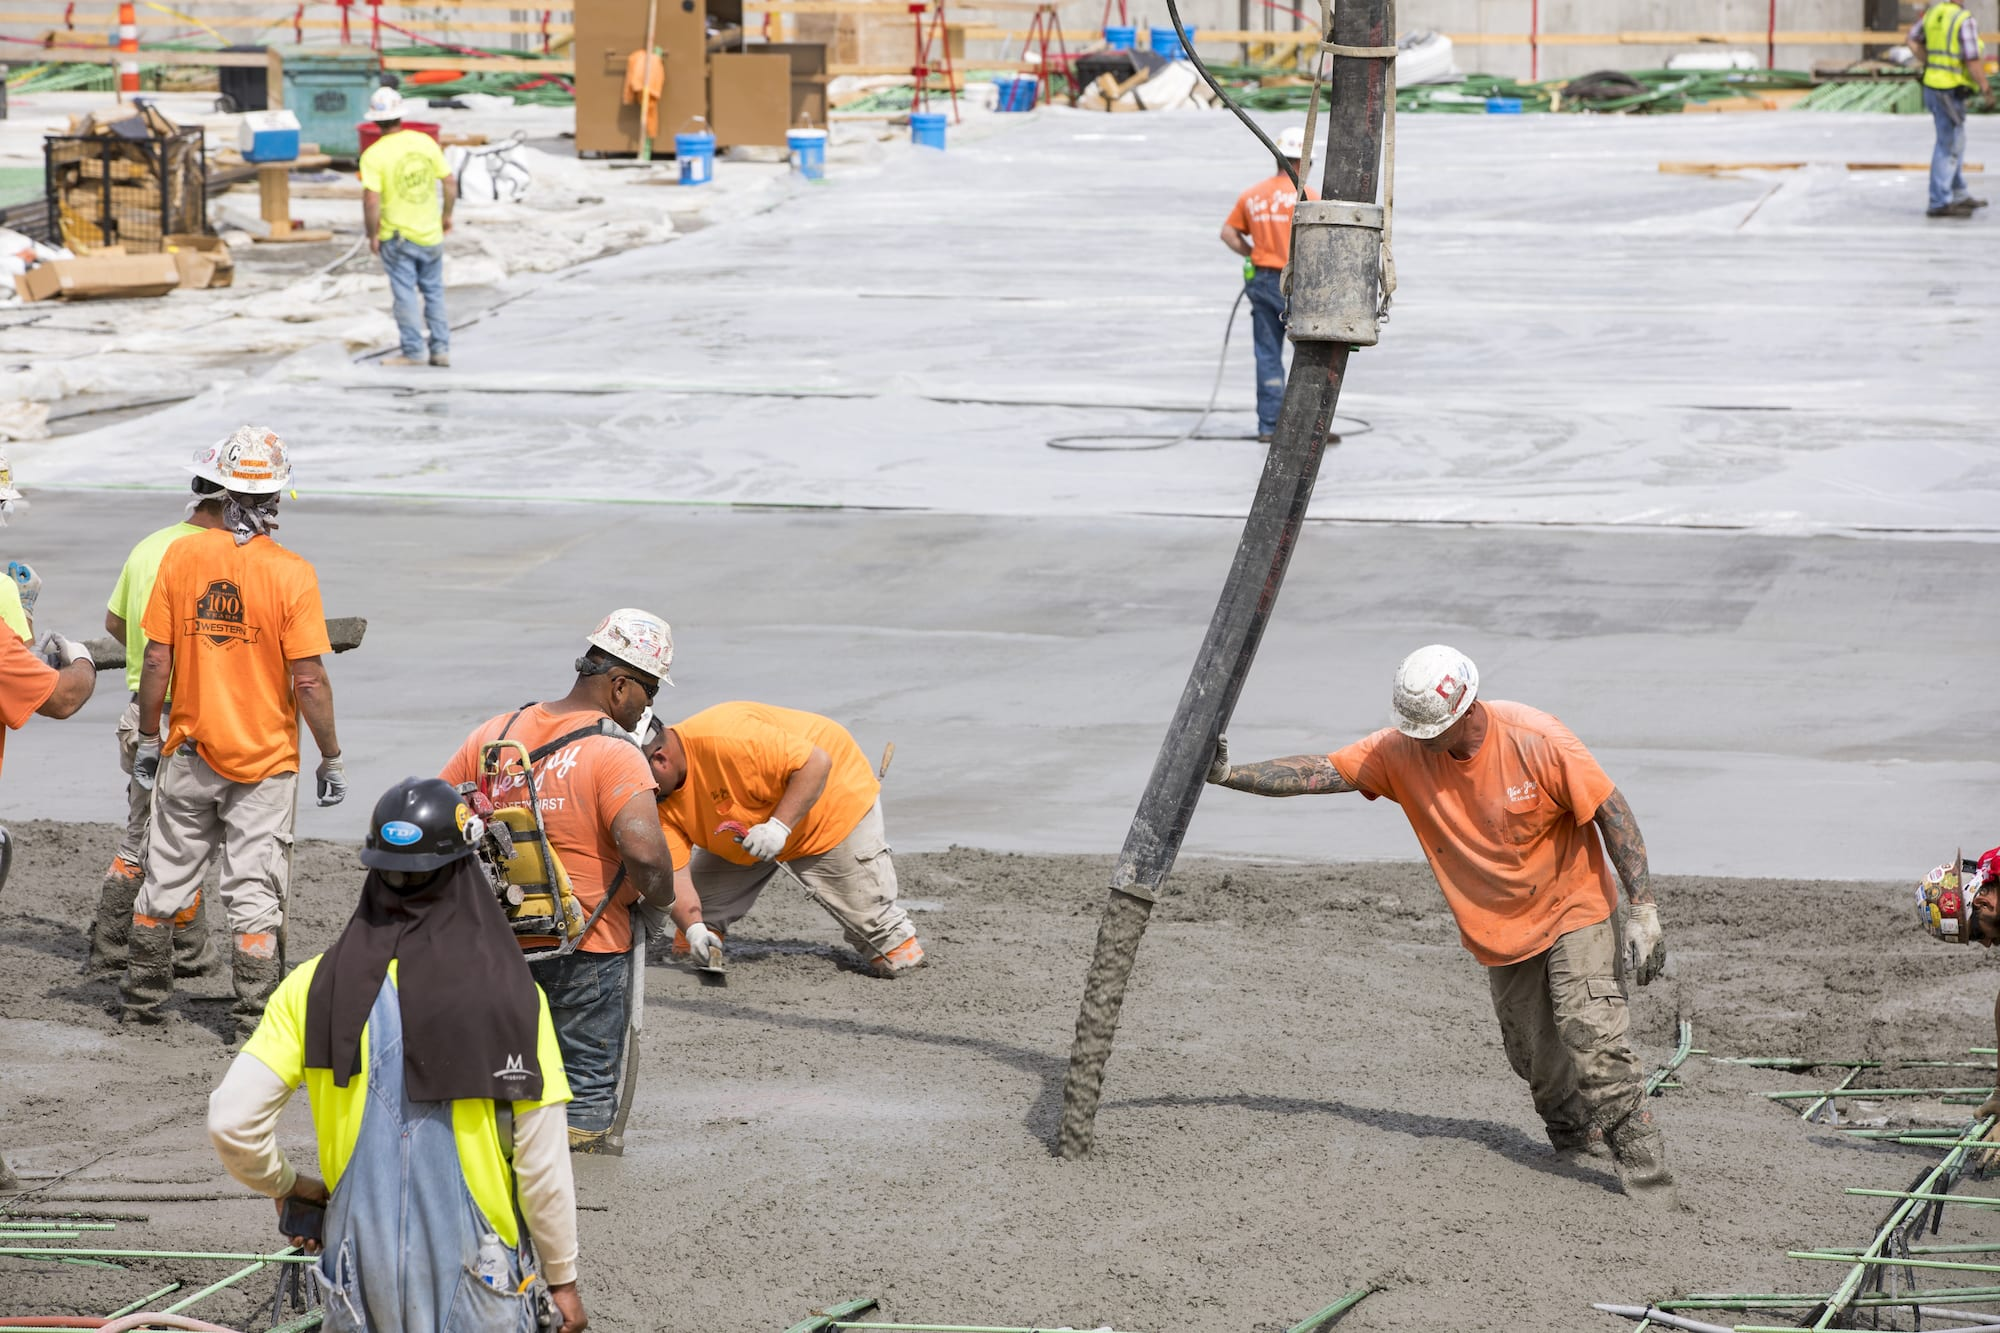 Constructoin workers in orange shirts pour concrete onto a massive surface.